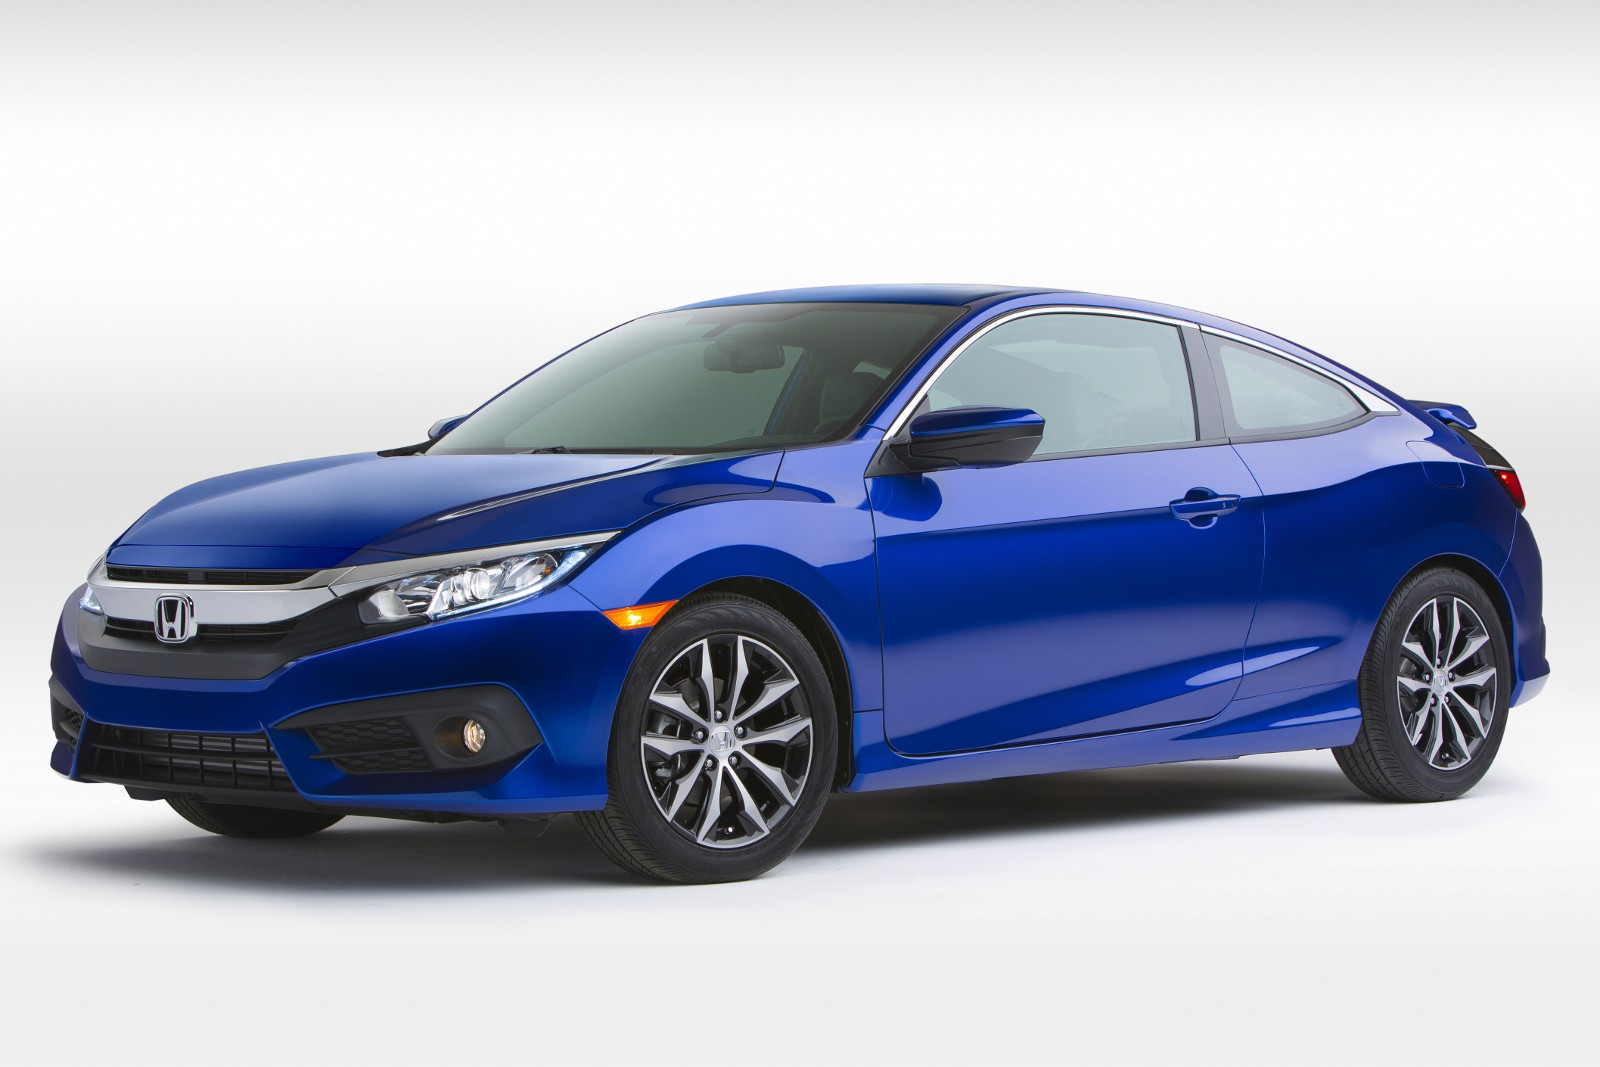 2016 Honda Civic Coupe Revealed With Bigger Cabin, Turbo